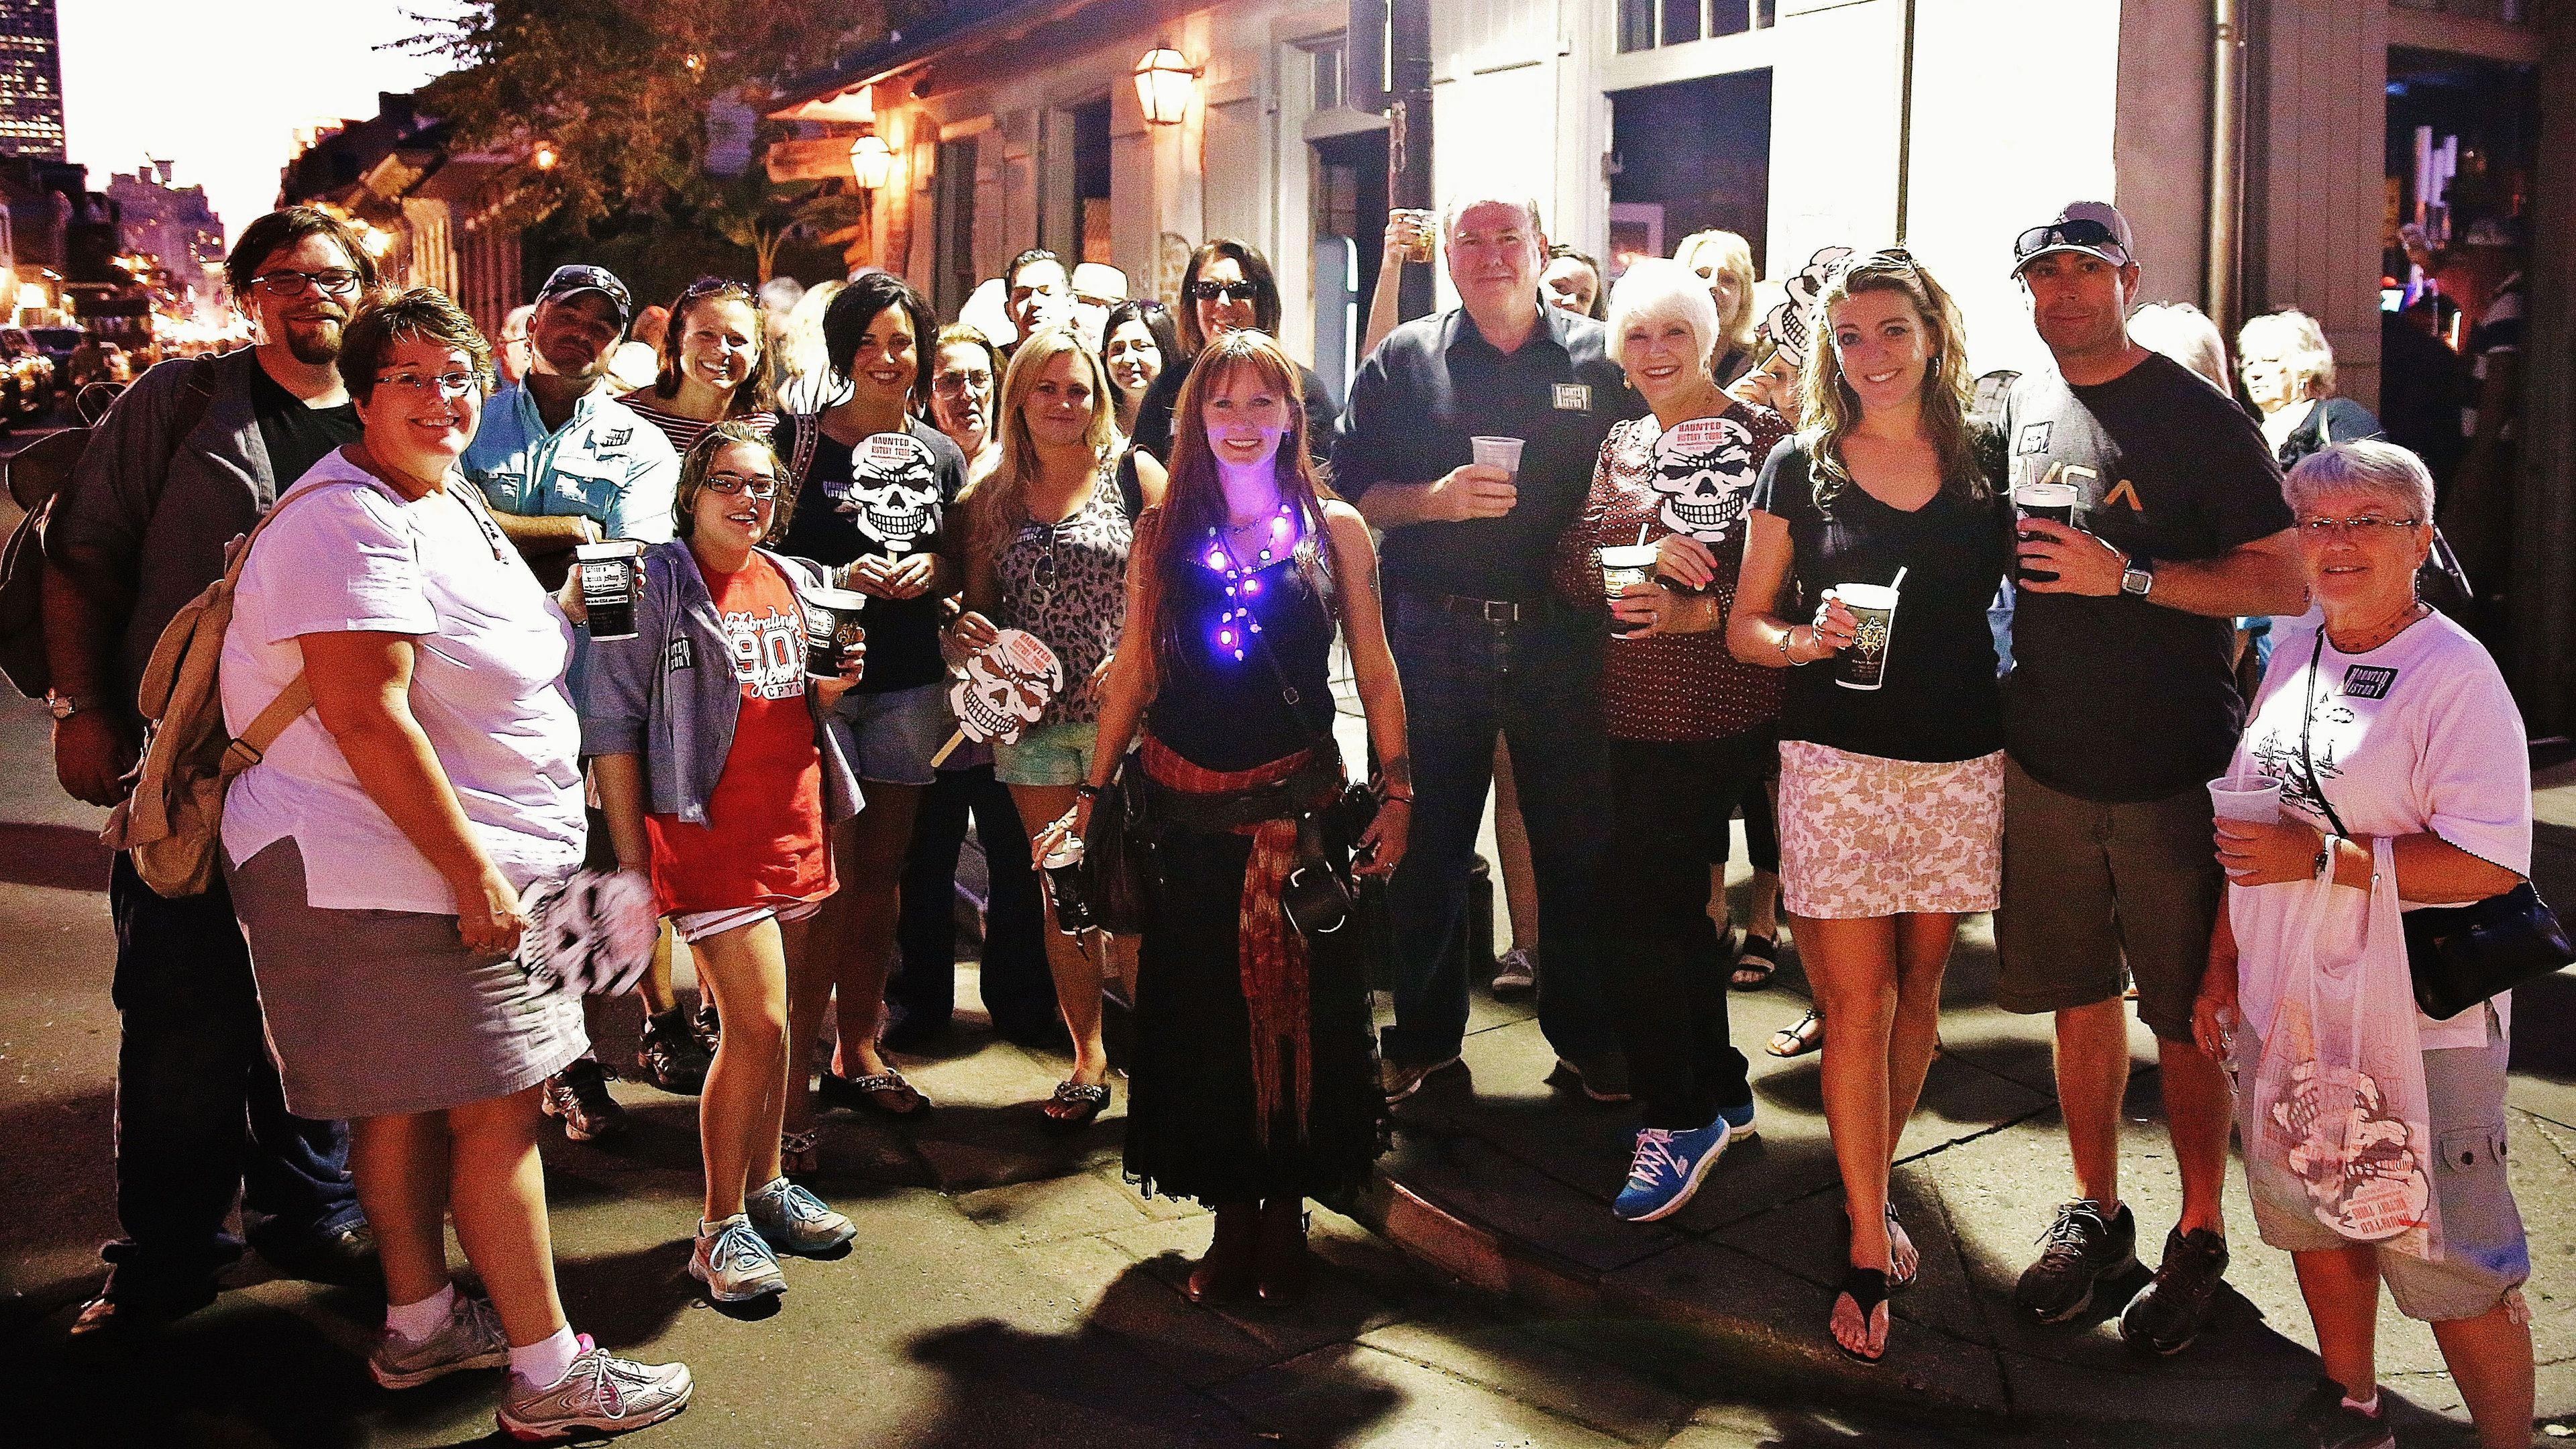 Voodoo, Witches, Ghosts, Vampires & Unsolved Mysteries Walking Tour